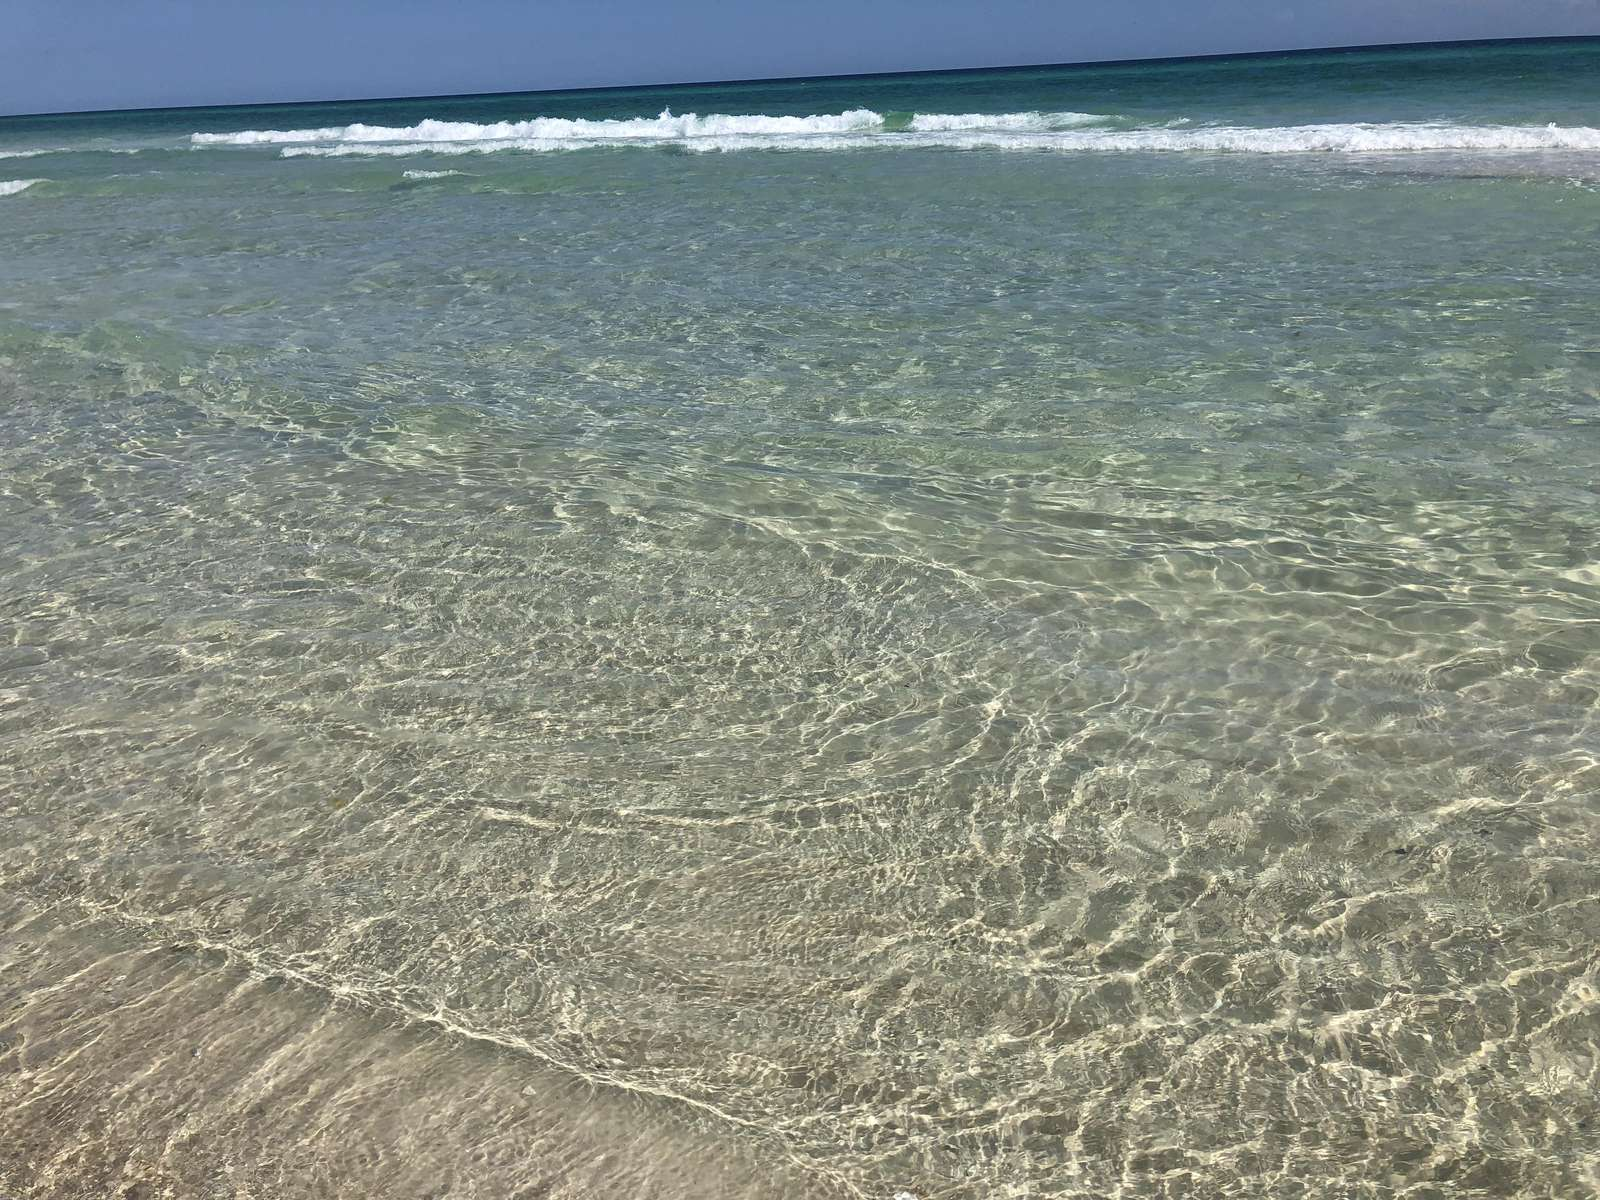 View from the back deck of home